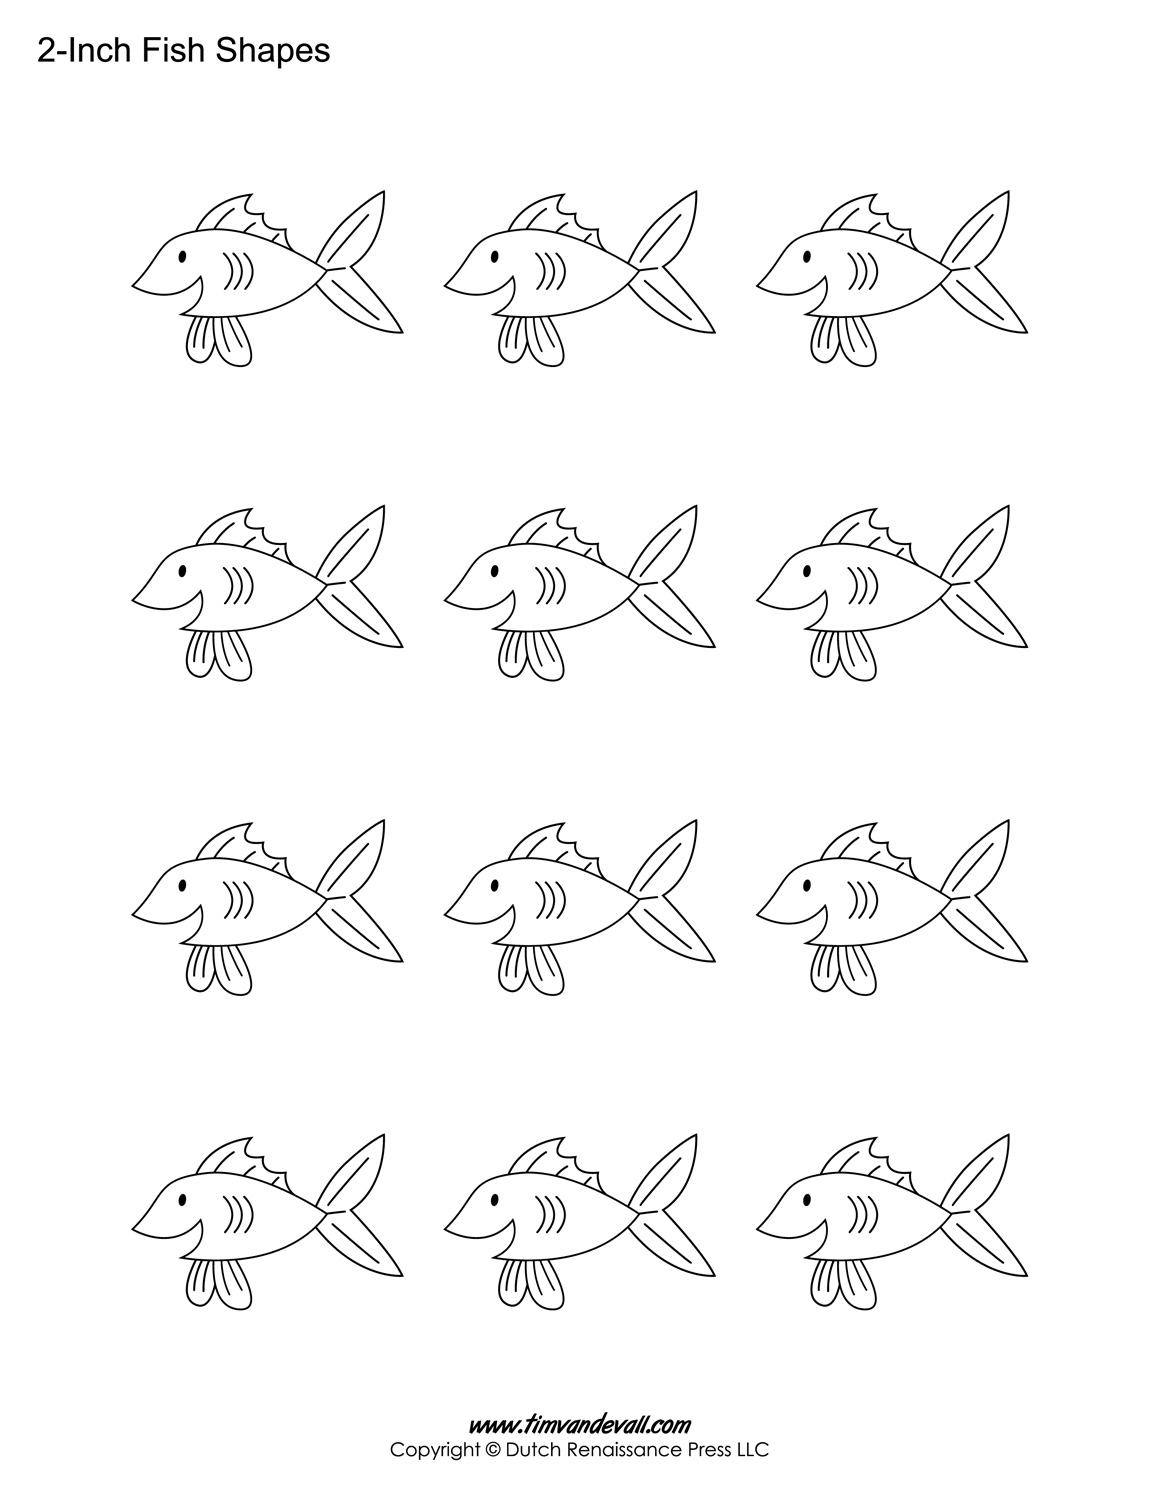 Printable Fish Templates for Kids | Preschool Fish Shapes